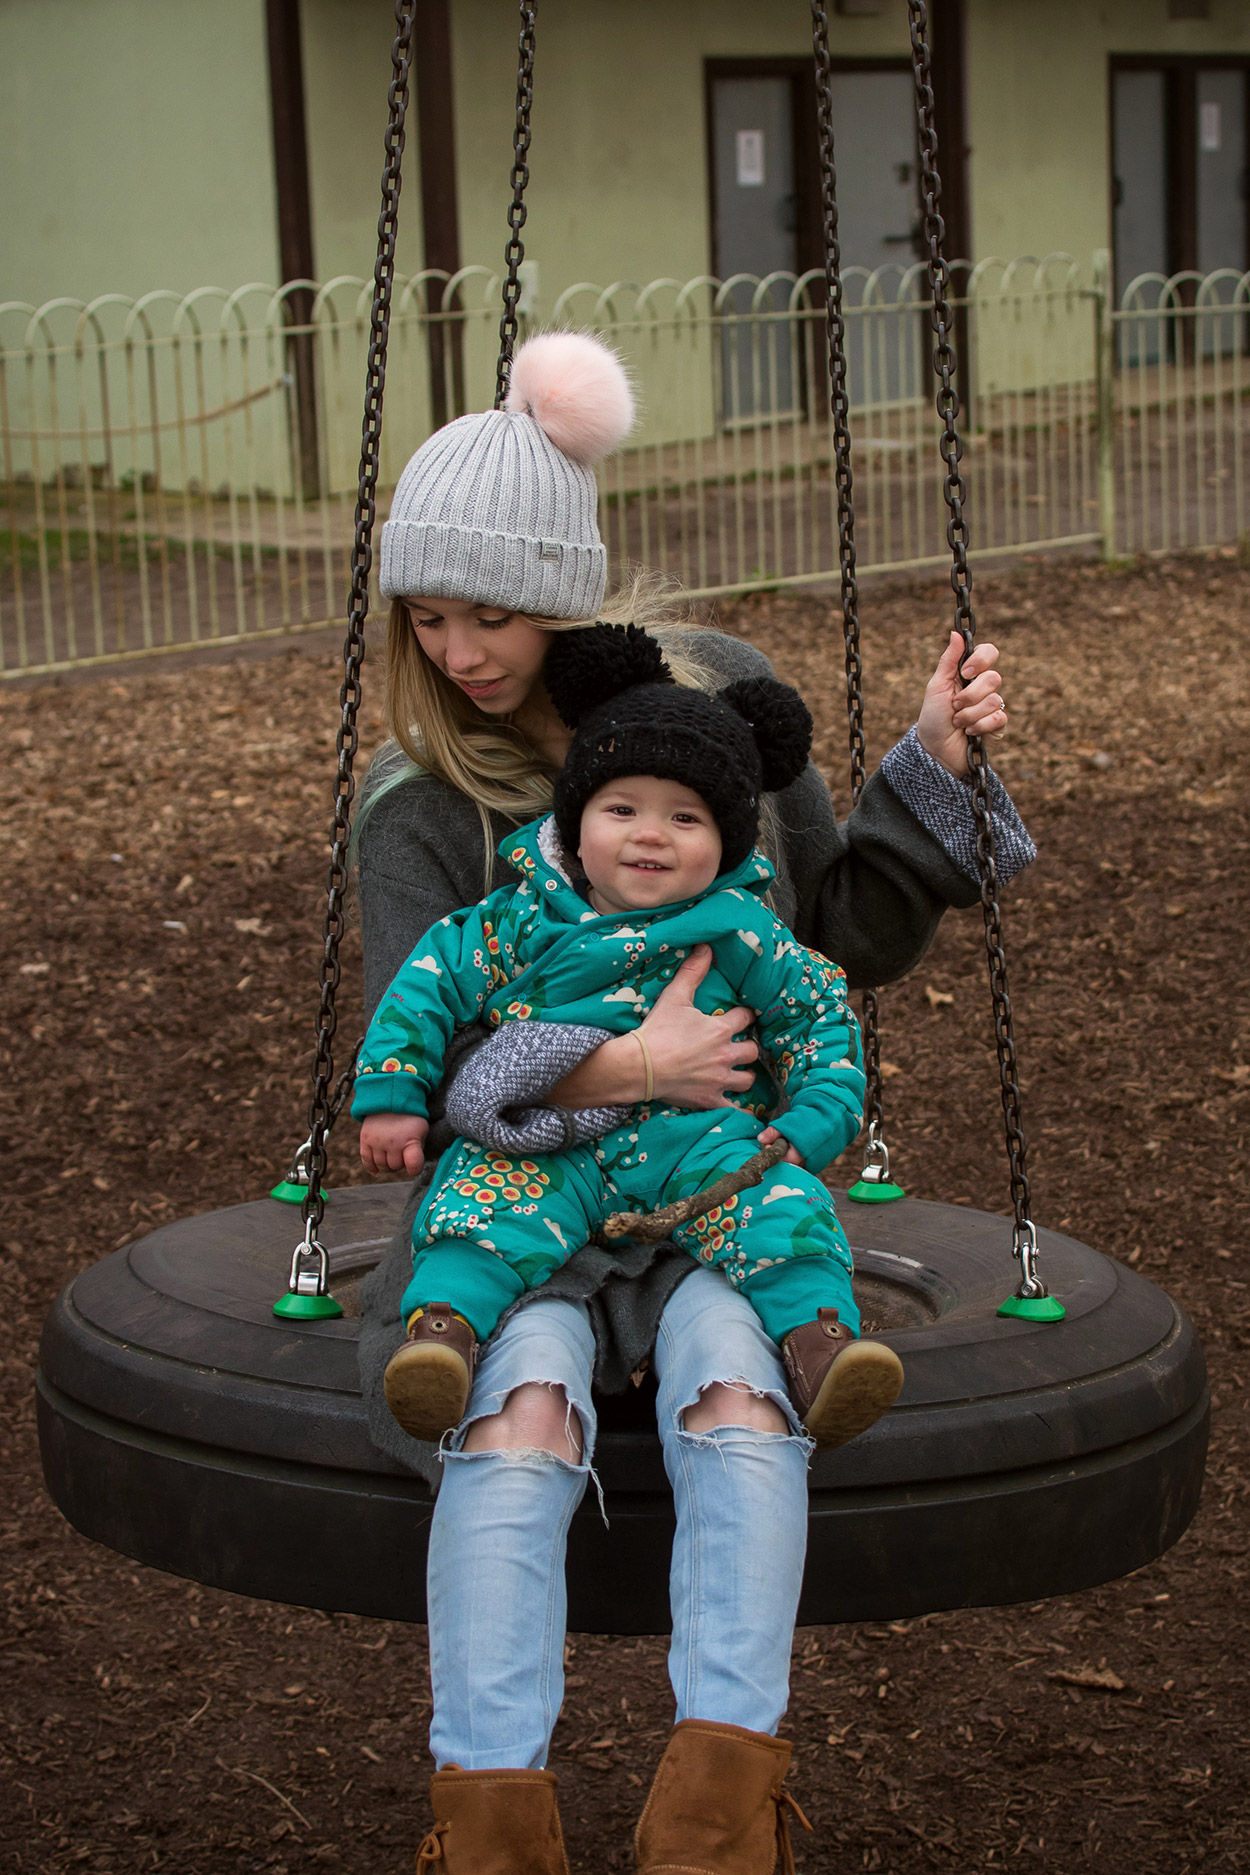 Young toddler sitting on Mothers lap on the swings at the park in Autumn